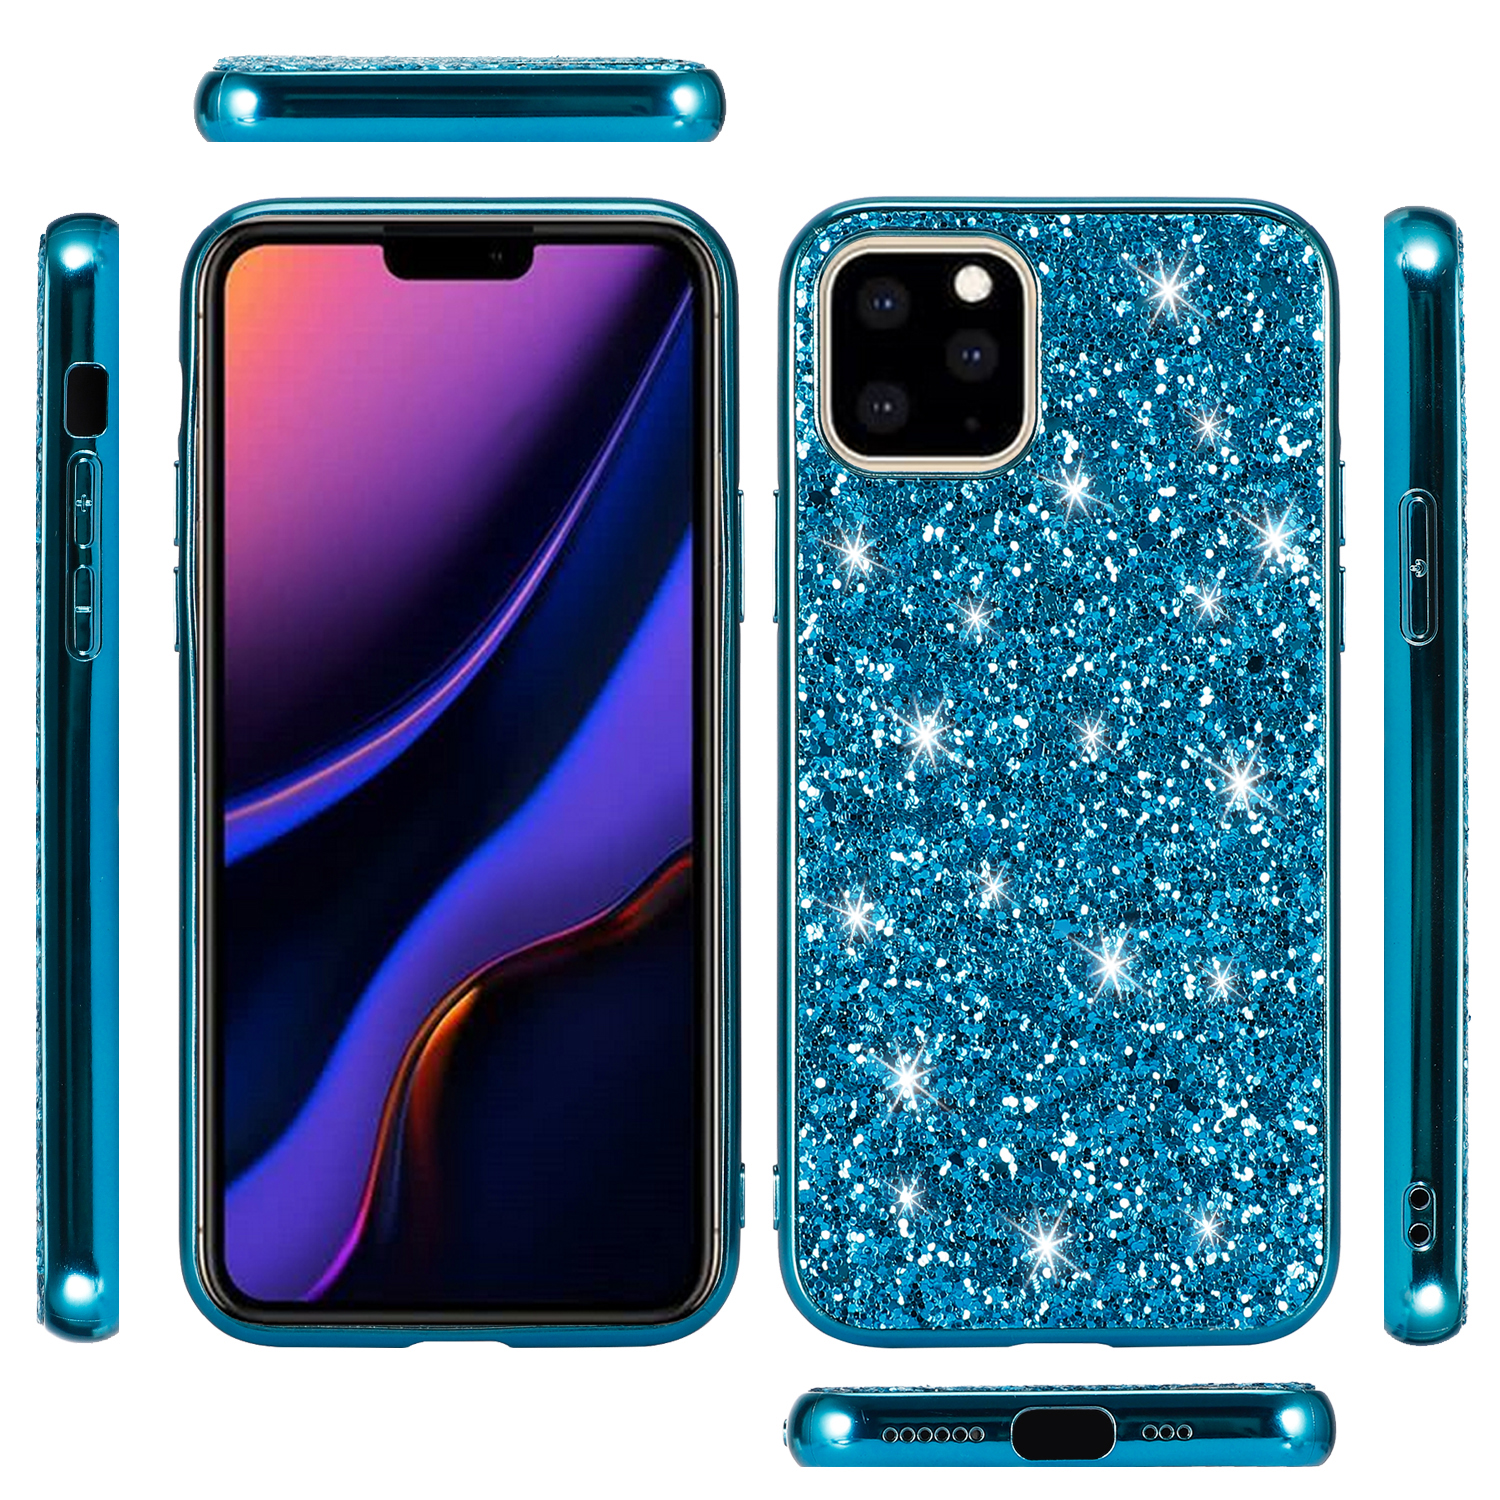 Shiny Glitter Girls Case for iPhone 11/11 Pro/11 Pro Max 25